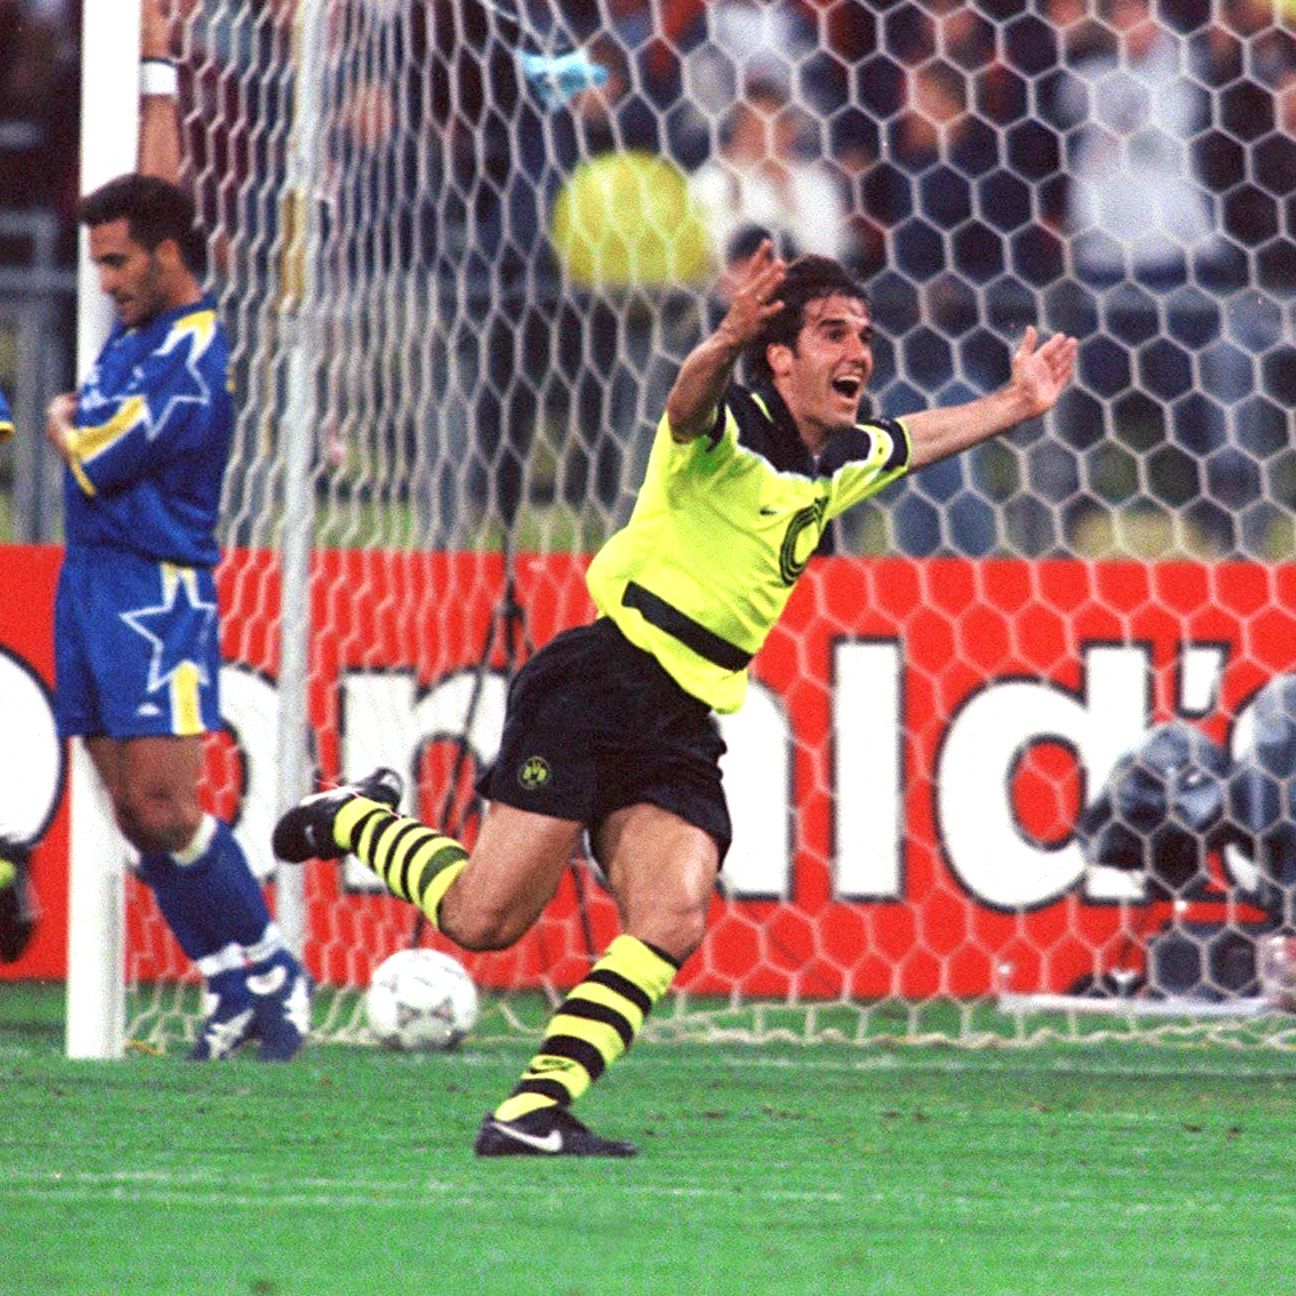 Borussia Dortmund and Juventus already share a rich history of Champions League clashes, including Dortmund's 3-1 win in the 1997 final.